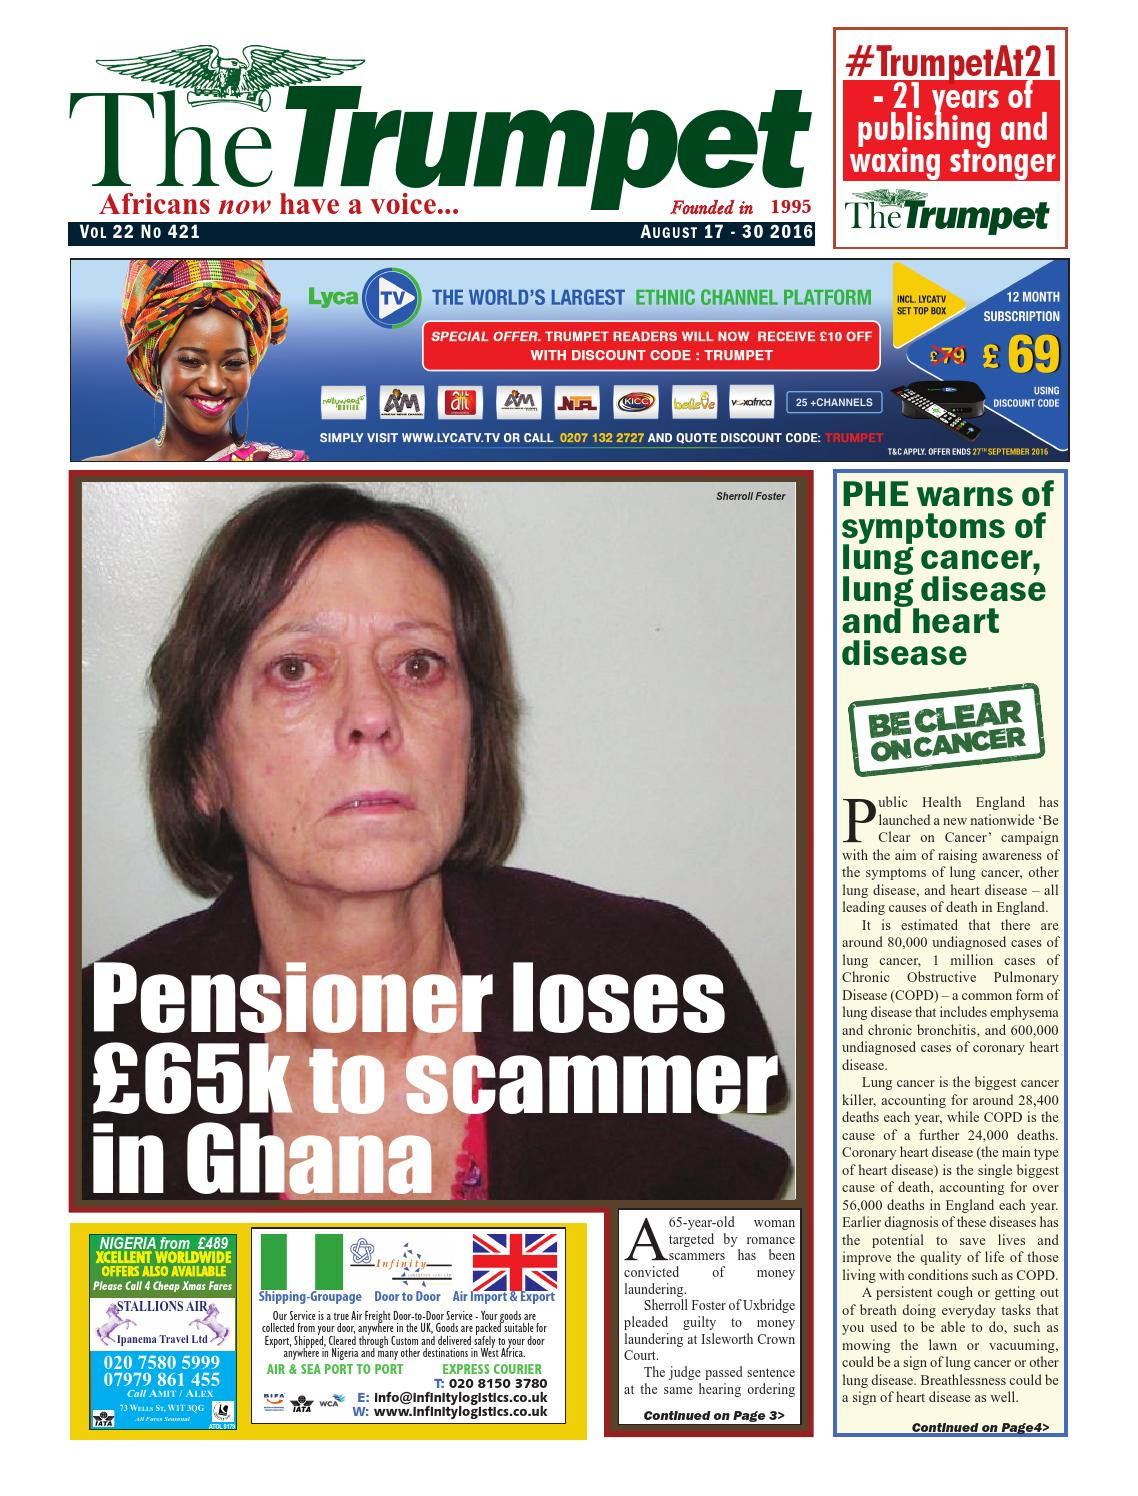 The Trumpet Newspaper Issue 421 (August 17 - 30 2016) by Trumpet